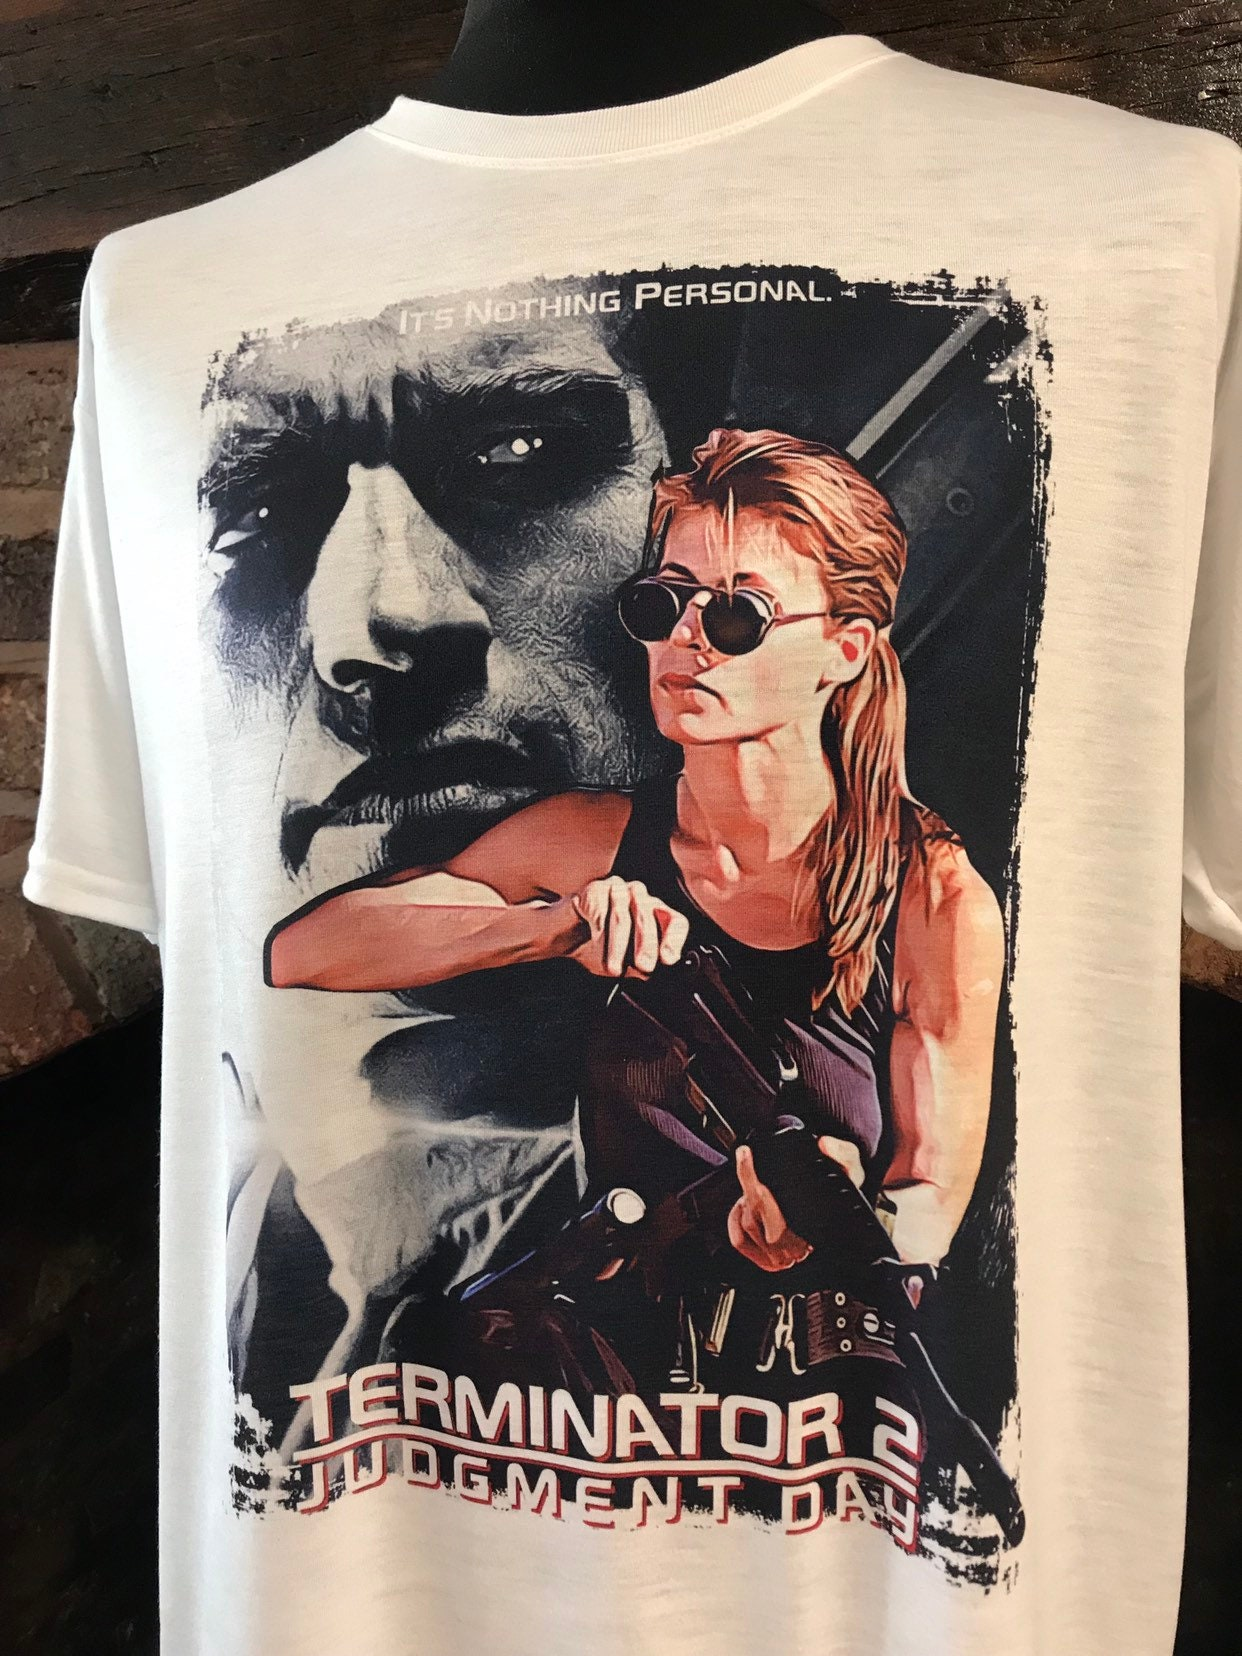 Terminator 2 Judgment Day Sarah Connor T-shirt for Adults